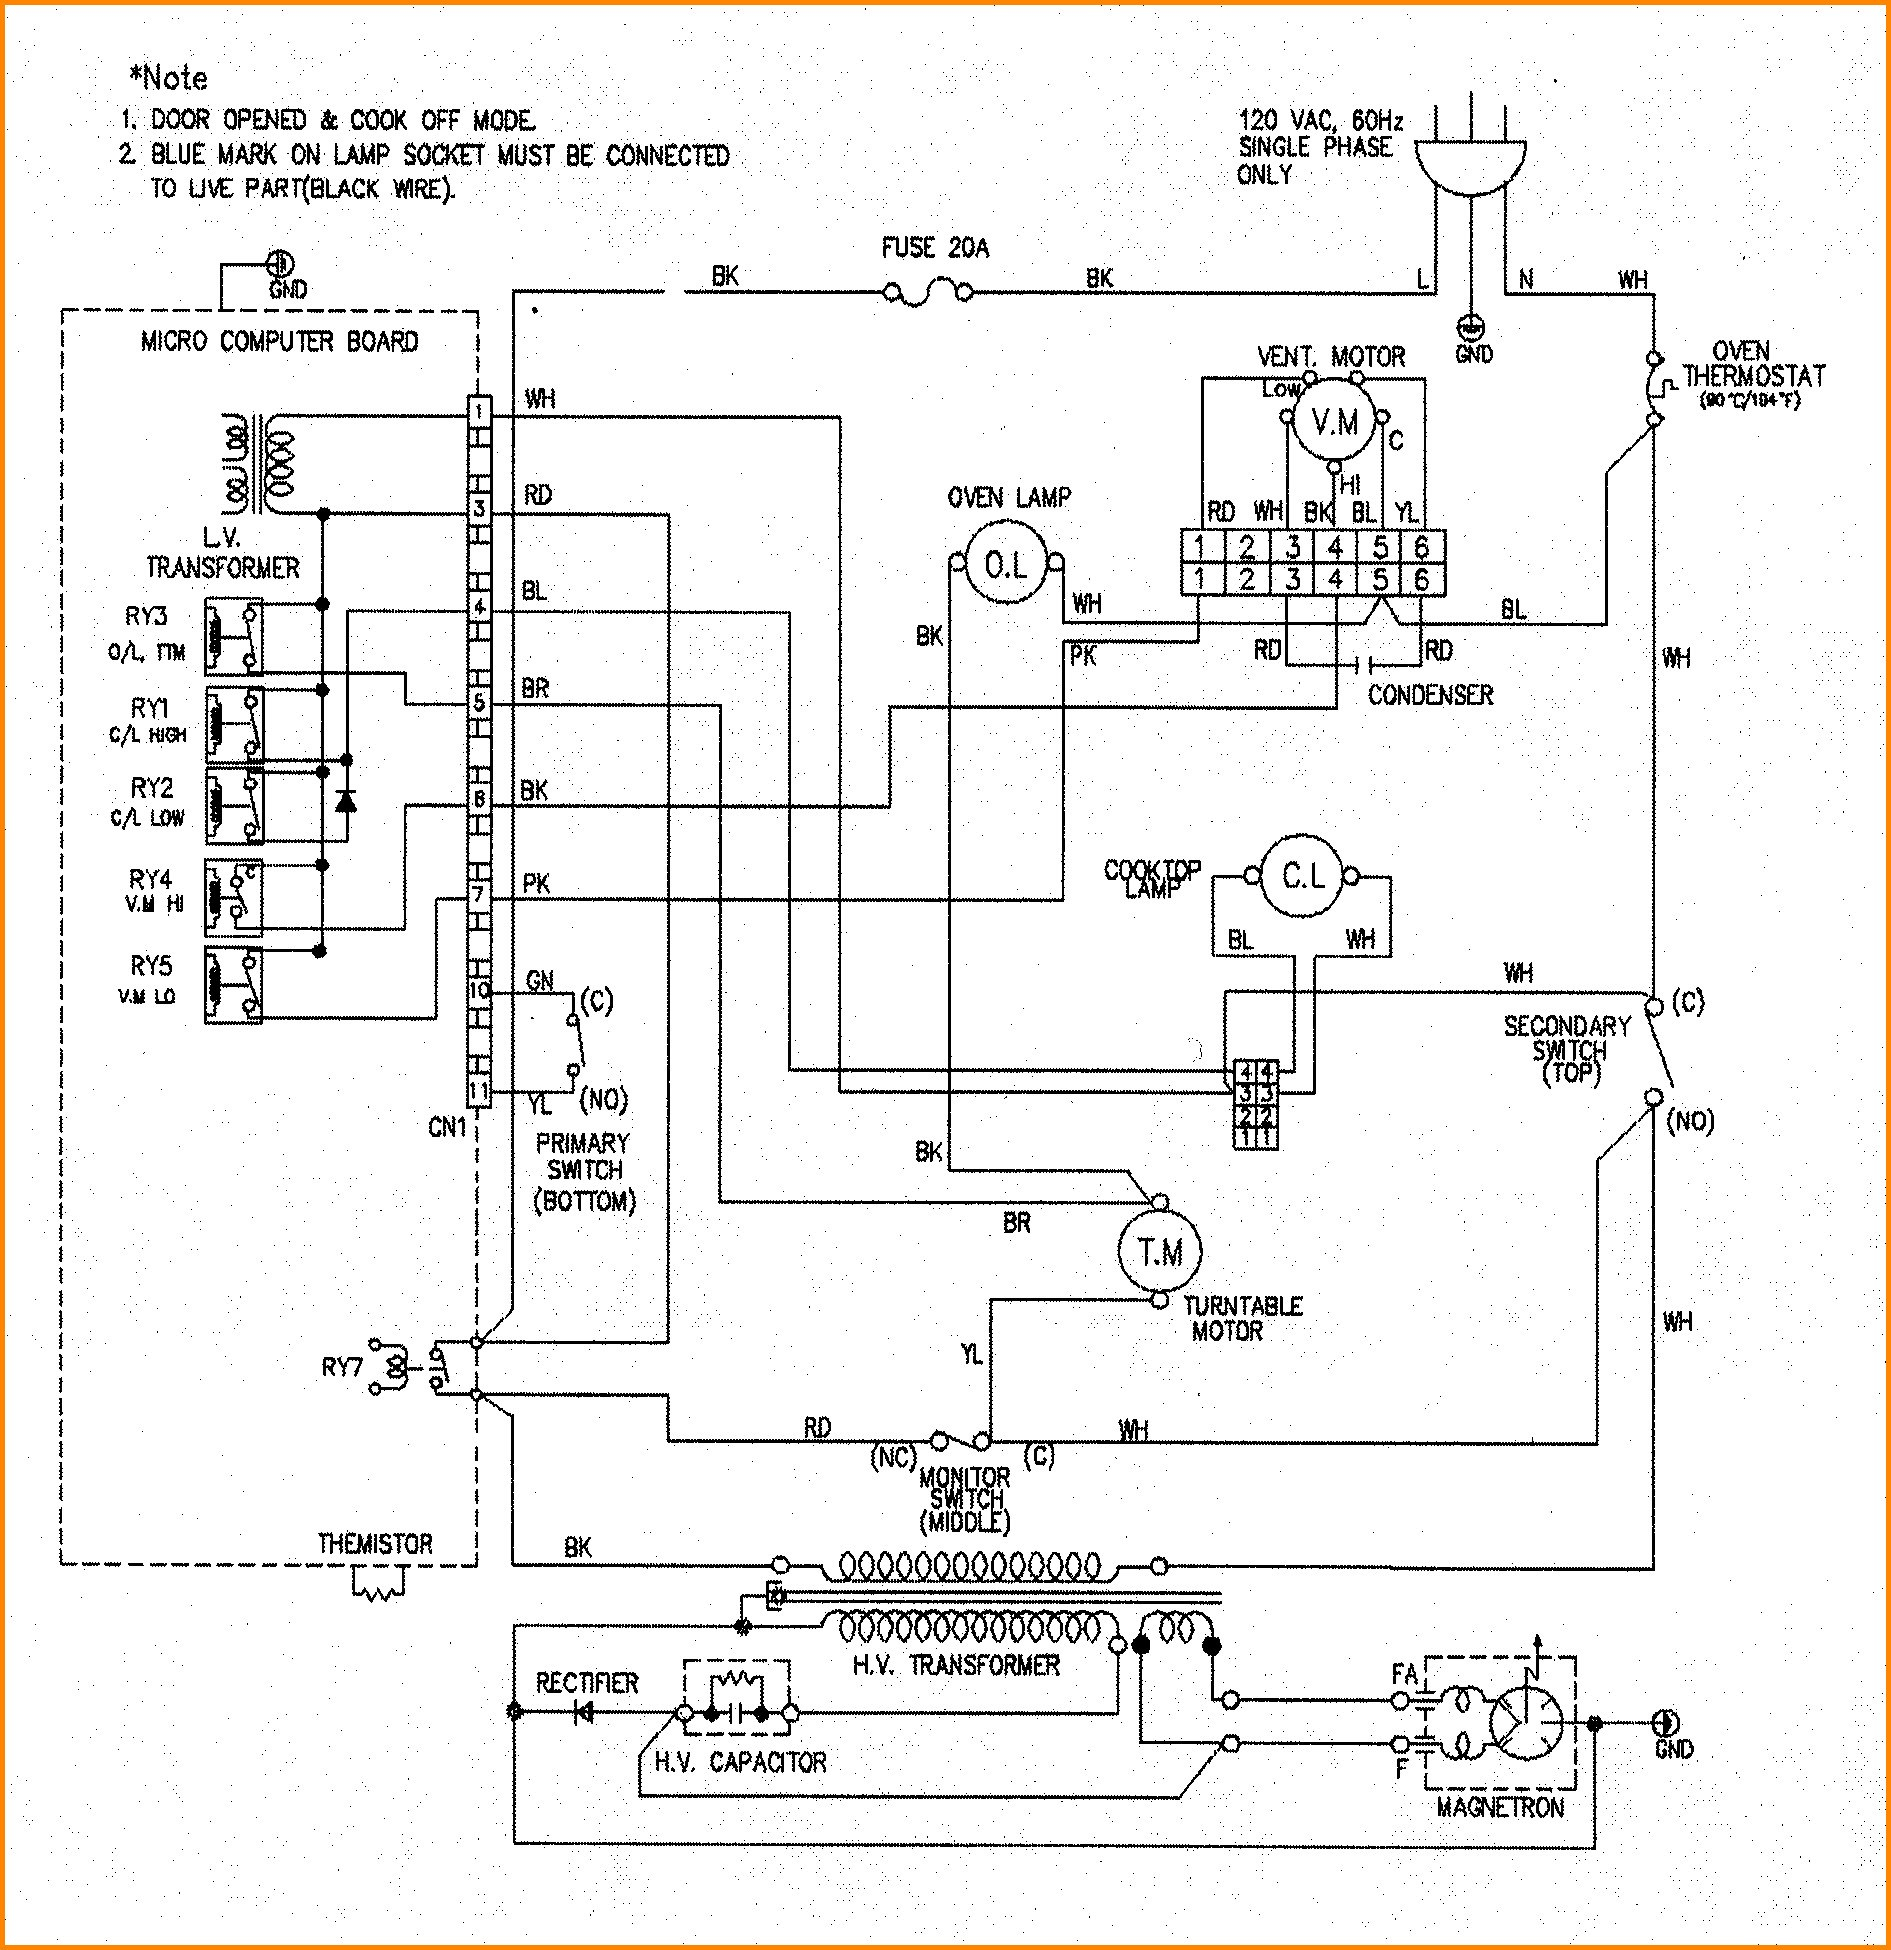 Ge Plug Wiring Diagram | Wiring Diagram Ge Thermostat Wiring Diagram Free Picture Schematic on